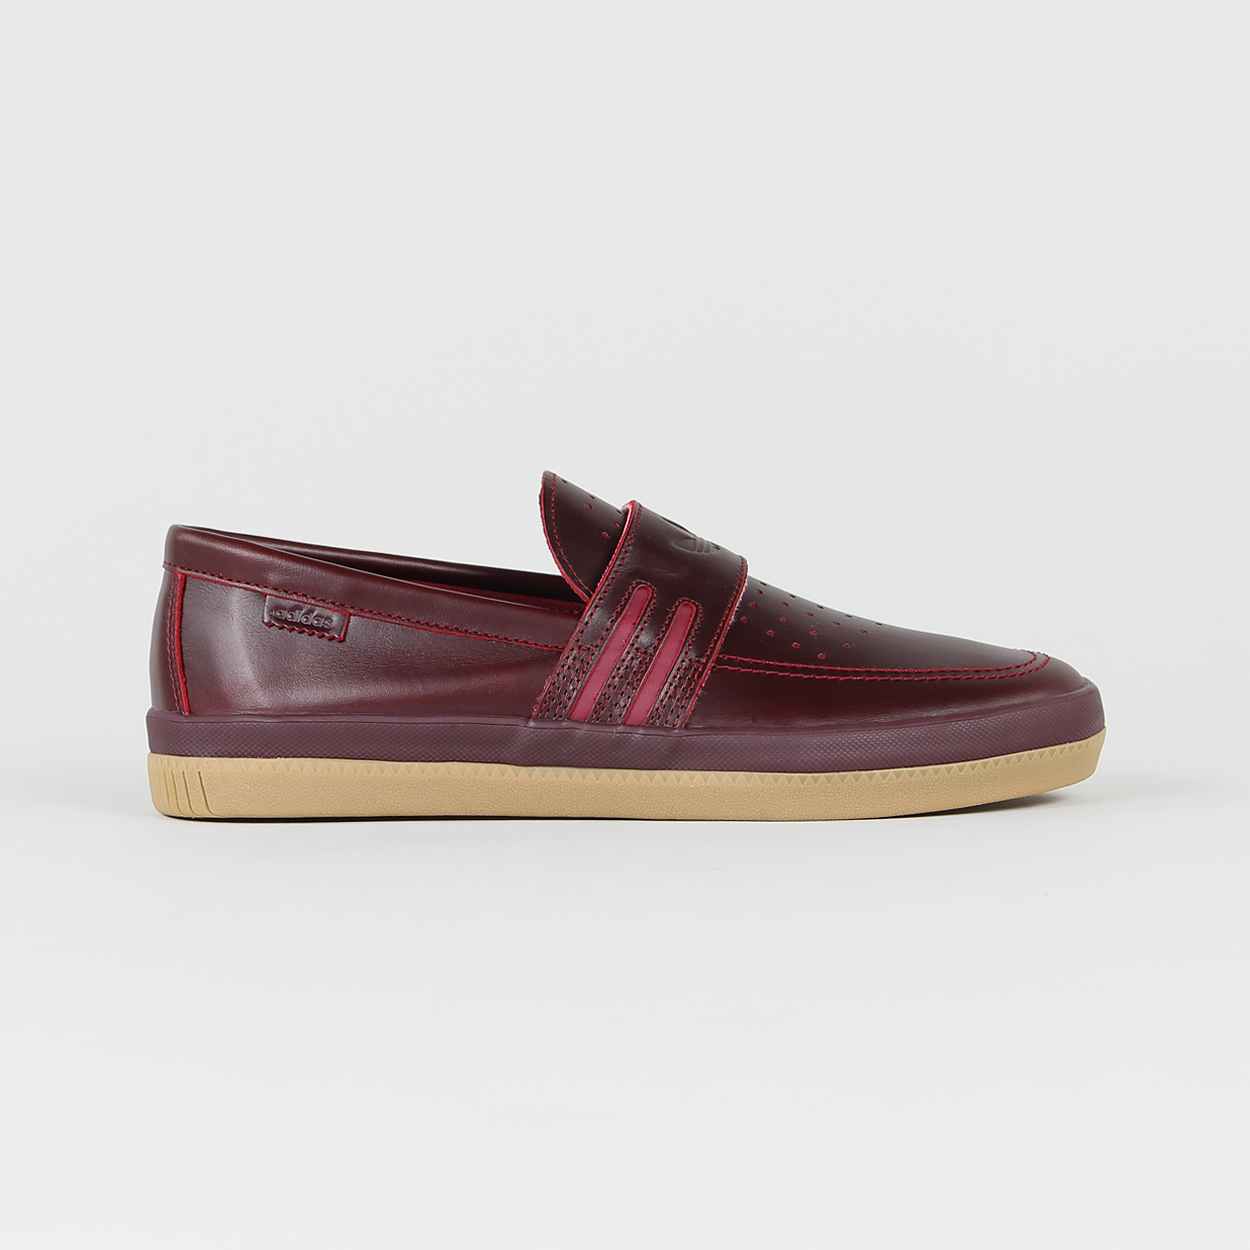 reputable site 6b8cd 98a85 Adidas Skateboarding Mens Acapulco Leather Loafer Shoes Burg